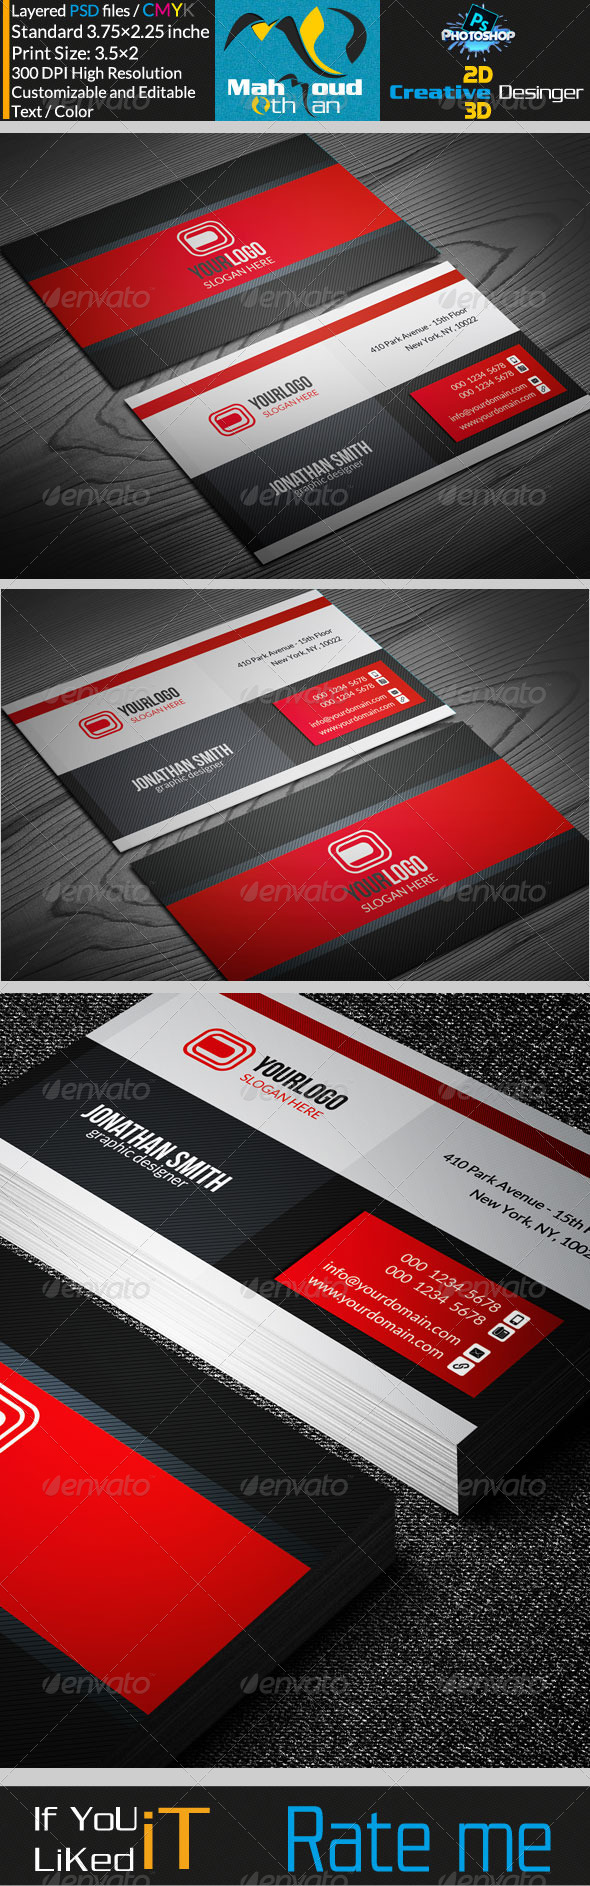 GraphicRiver Corportae Business Card V17 7297888